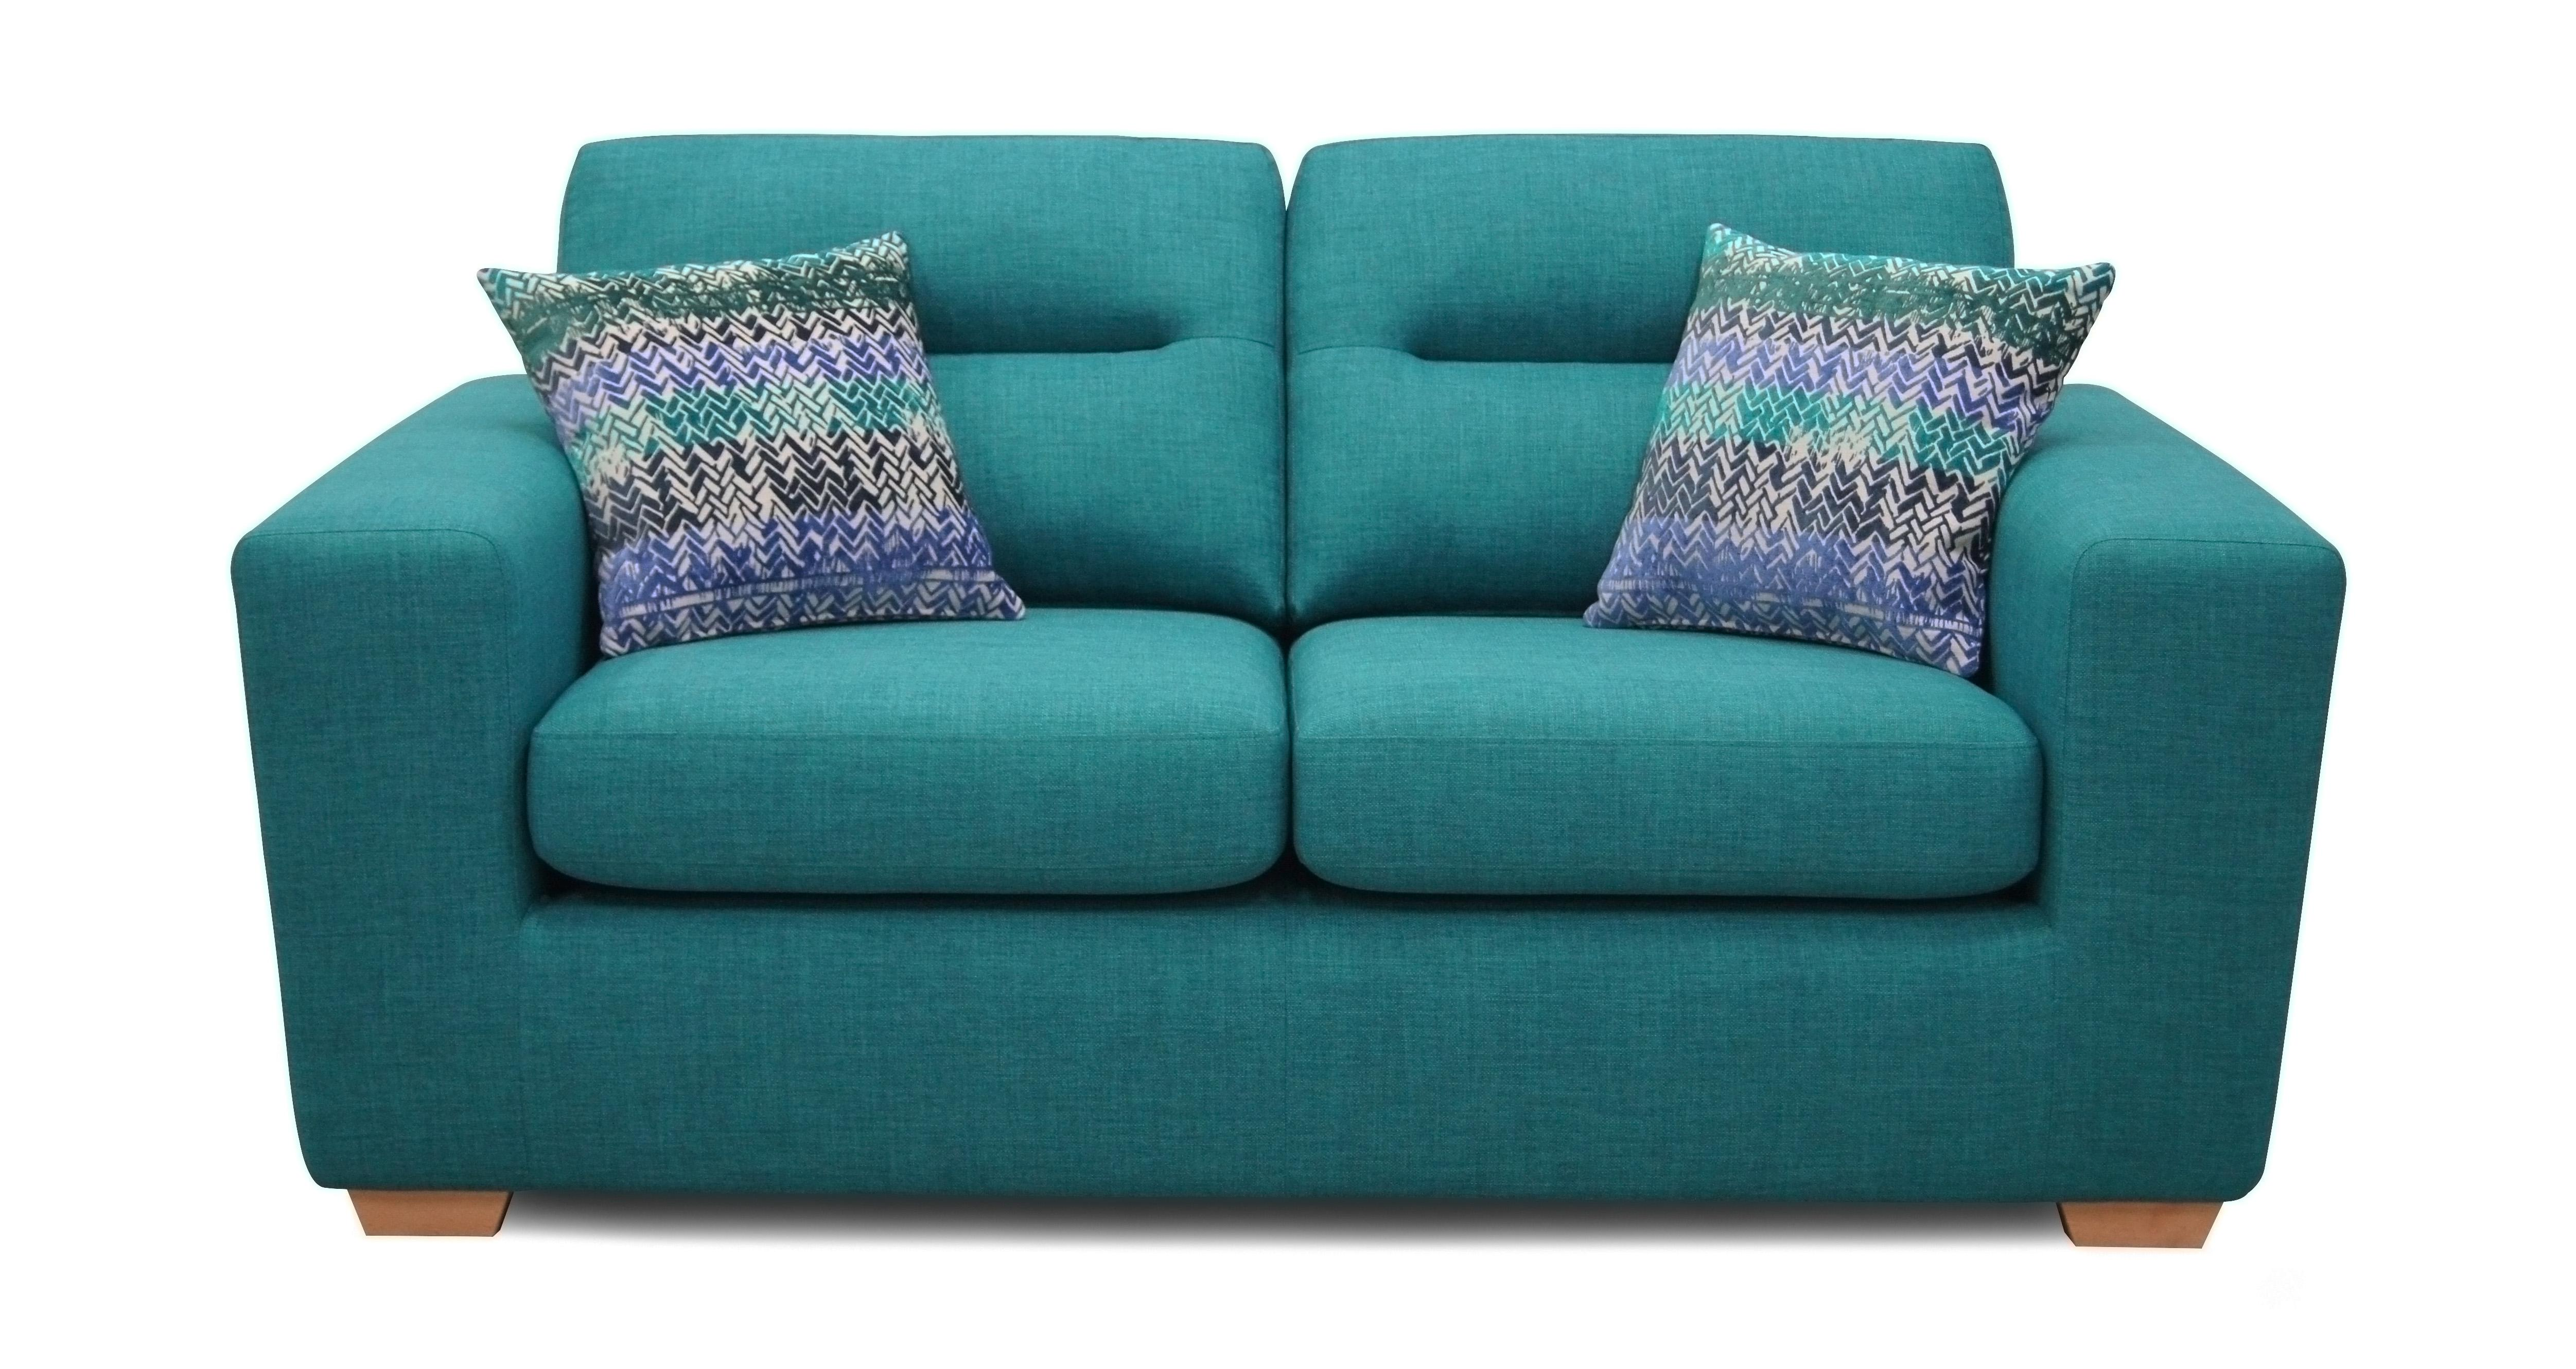 Rox Small 2 Seater Sofa Revive | DFS